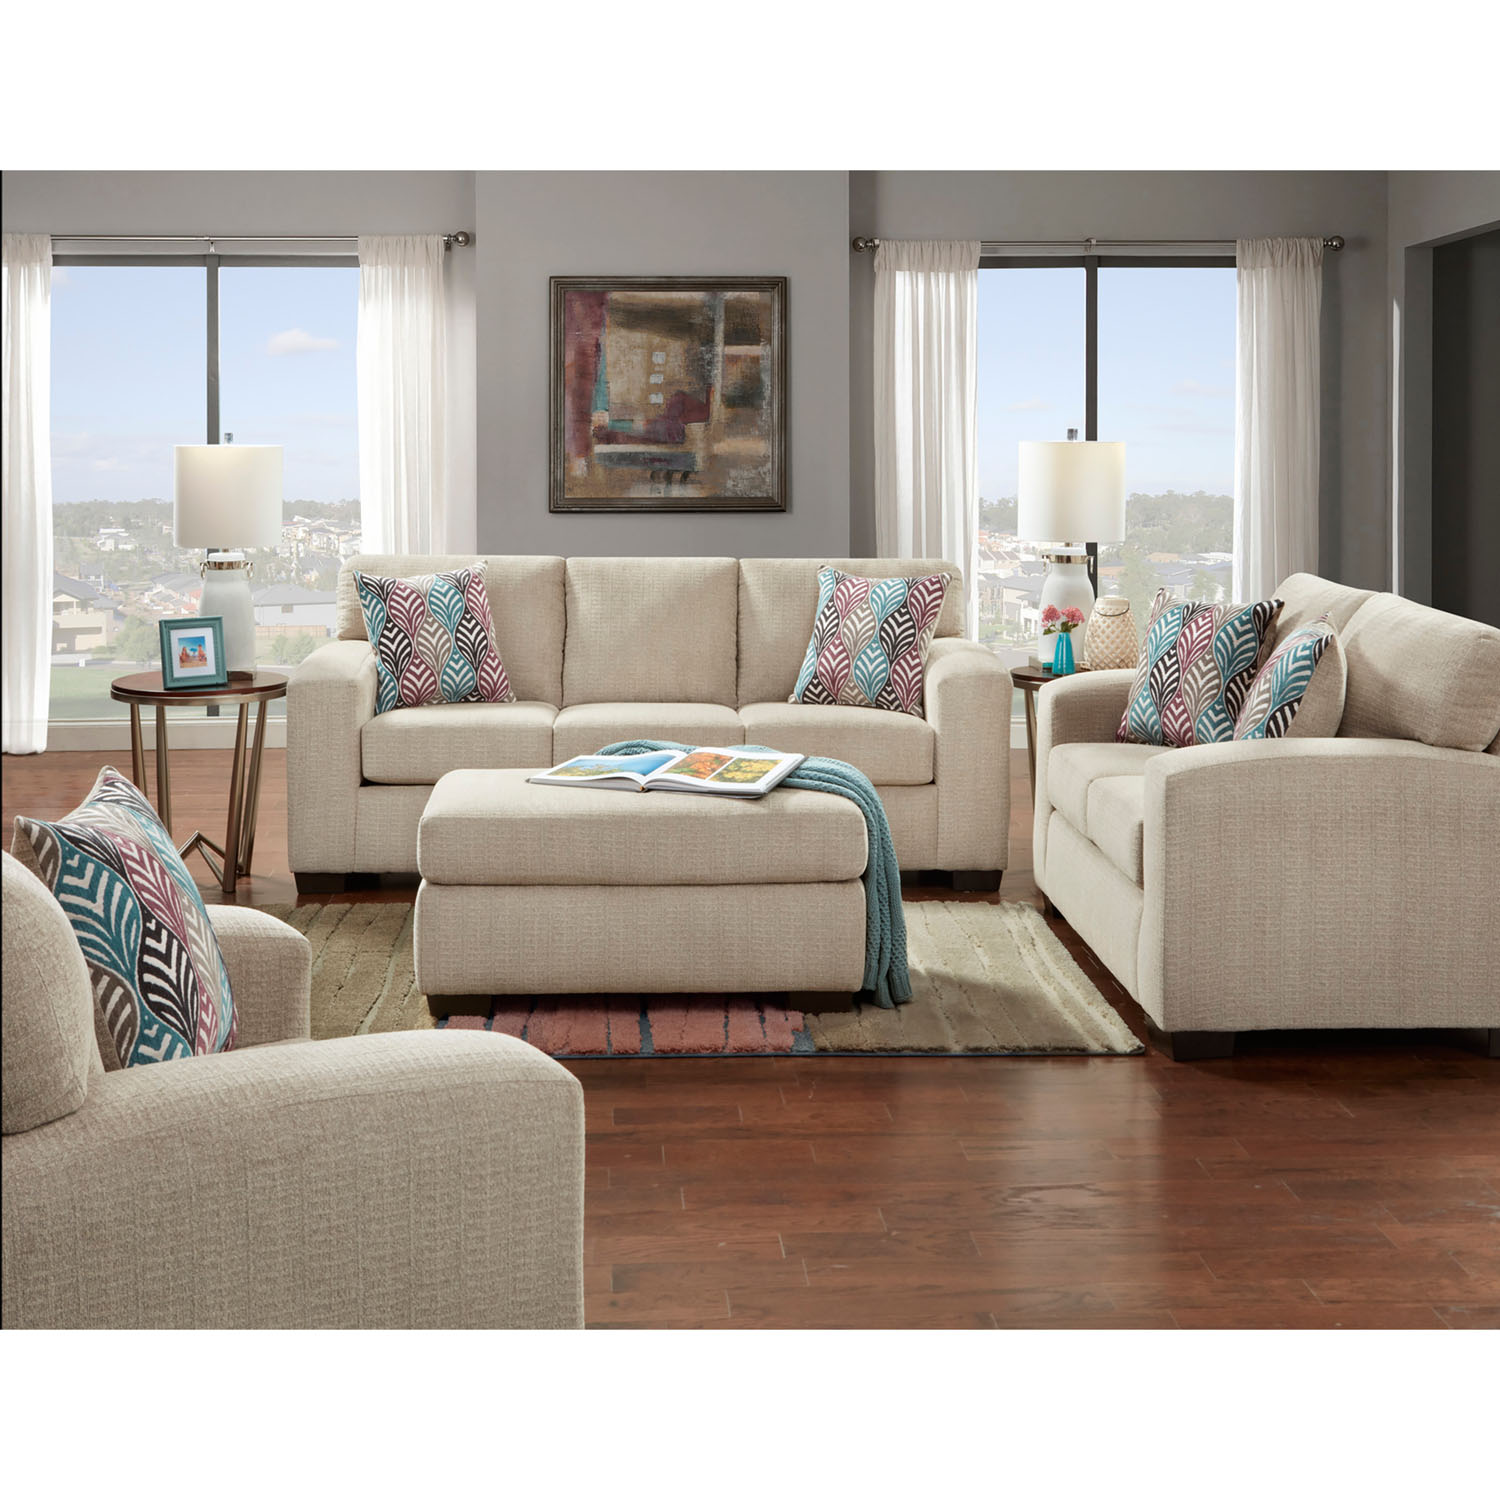 cambridge chamberlain four piece living room set sofa loveseat extra large chair and cocktail ottoman walmart com